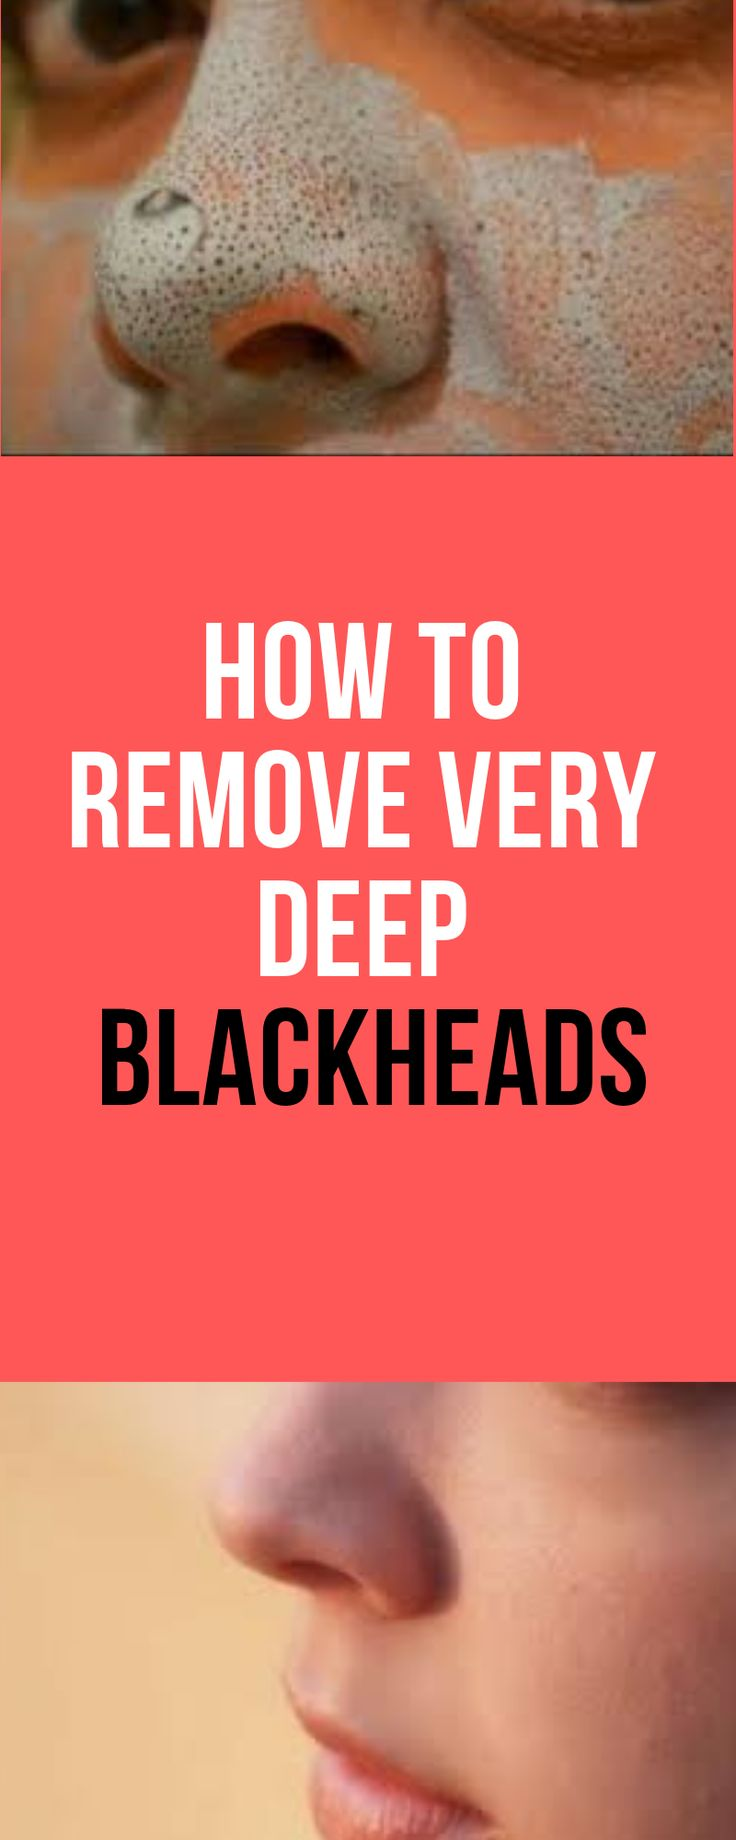 How to Remove Very Deep Blackheads